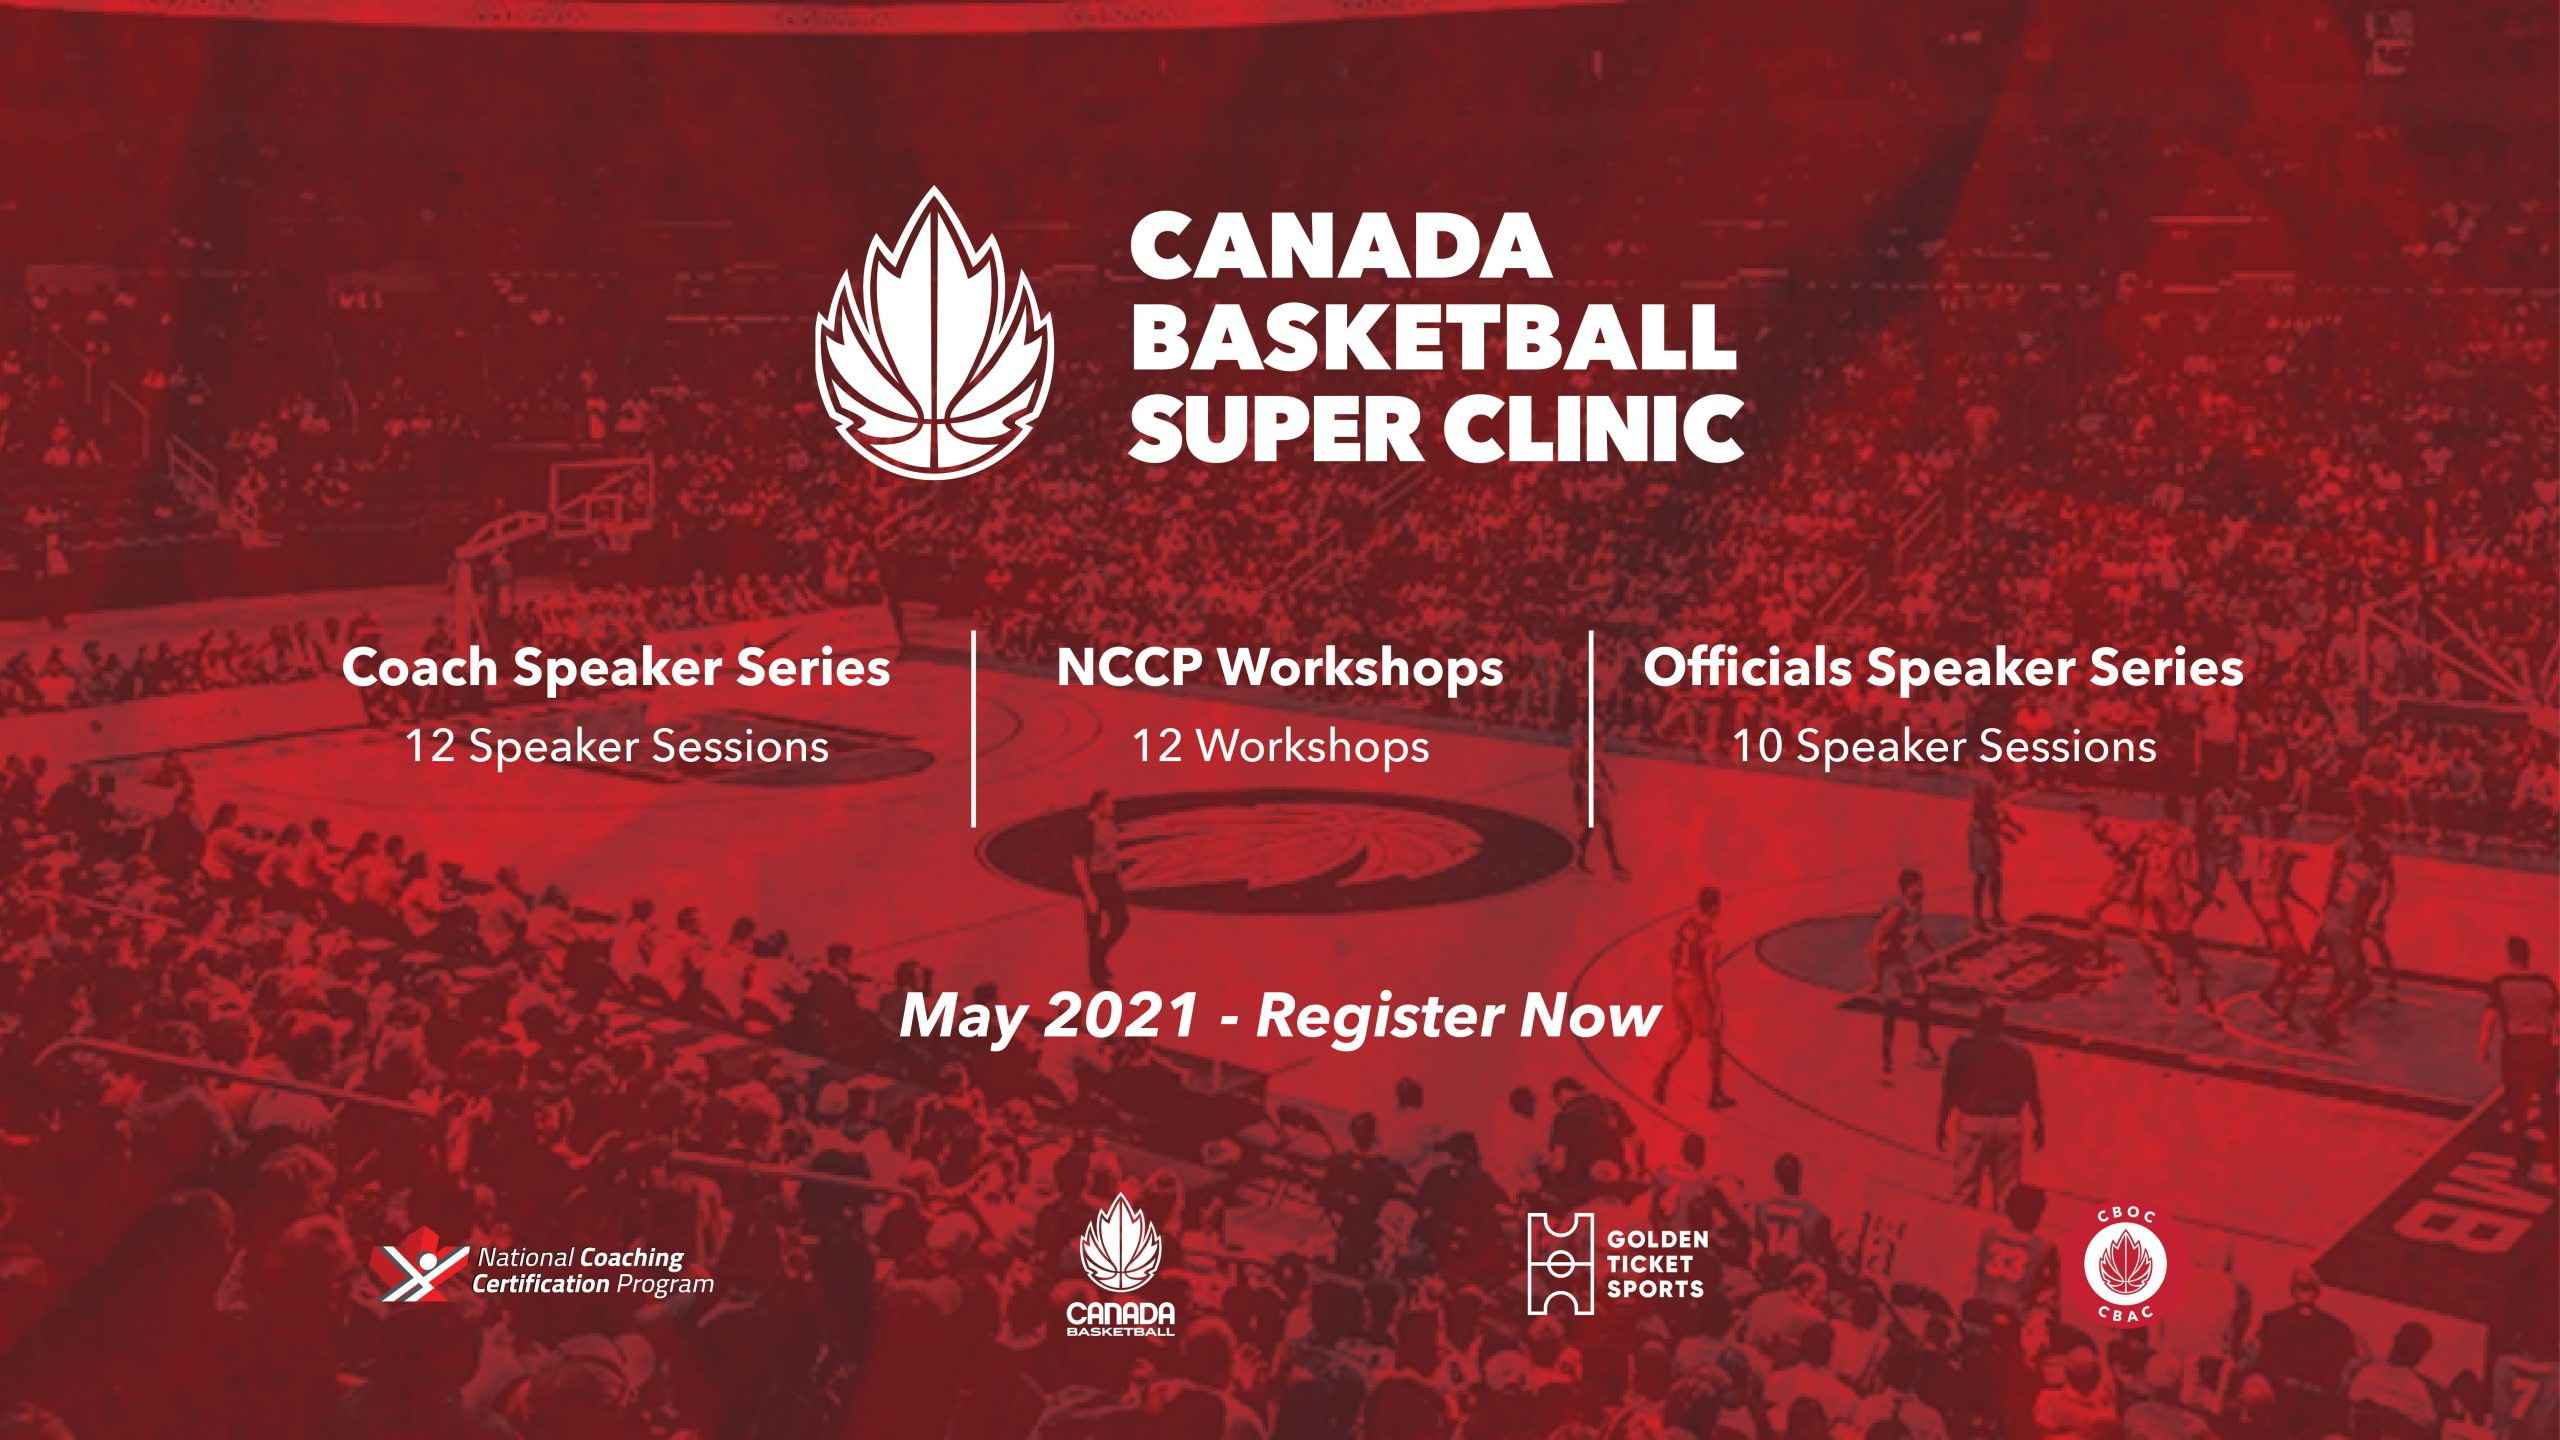 Canada Basketball Super Clinic, Golden Ticket Sports, FastModel Sports